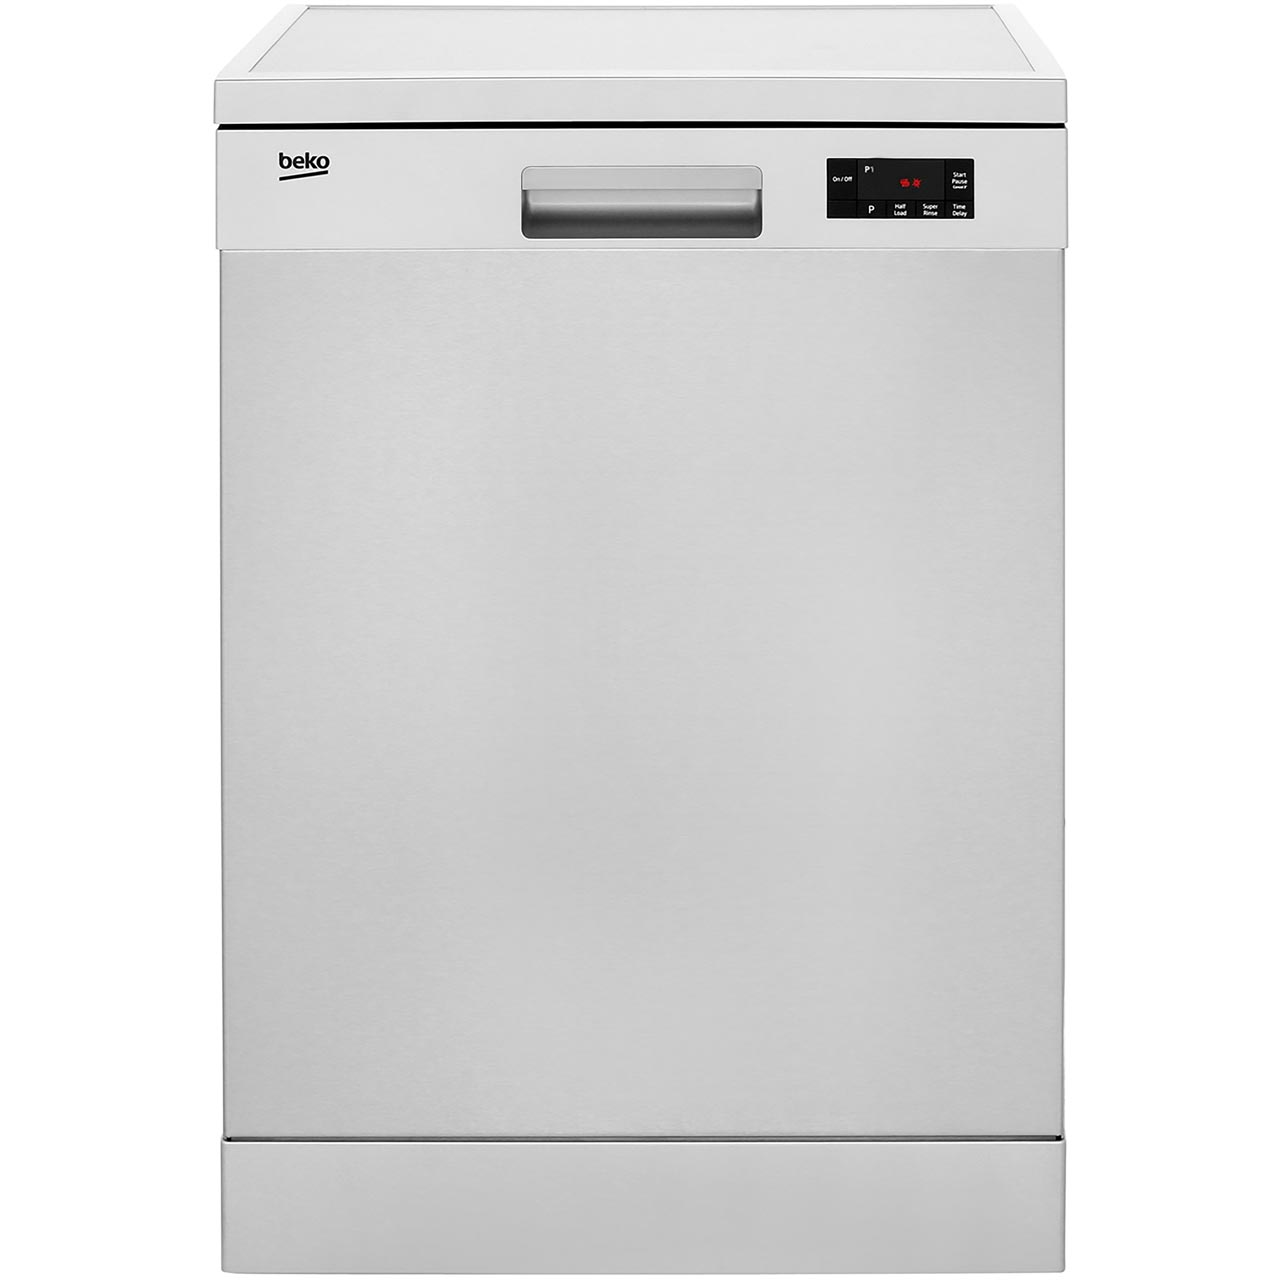 dfn16r10x ss beko full size dishwasher aocom dishwasher size